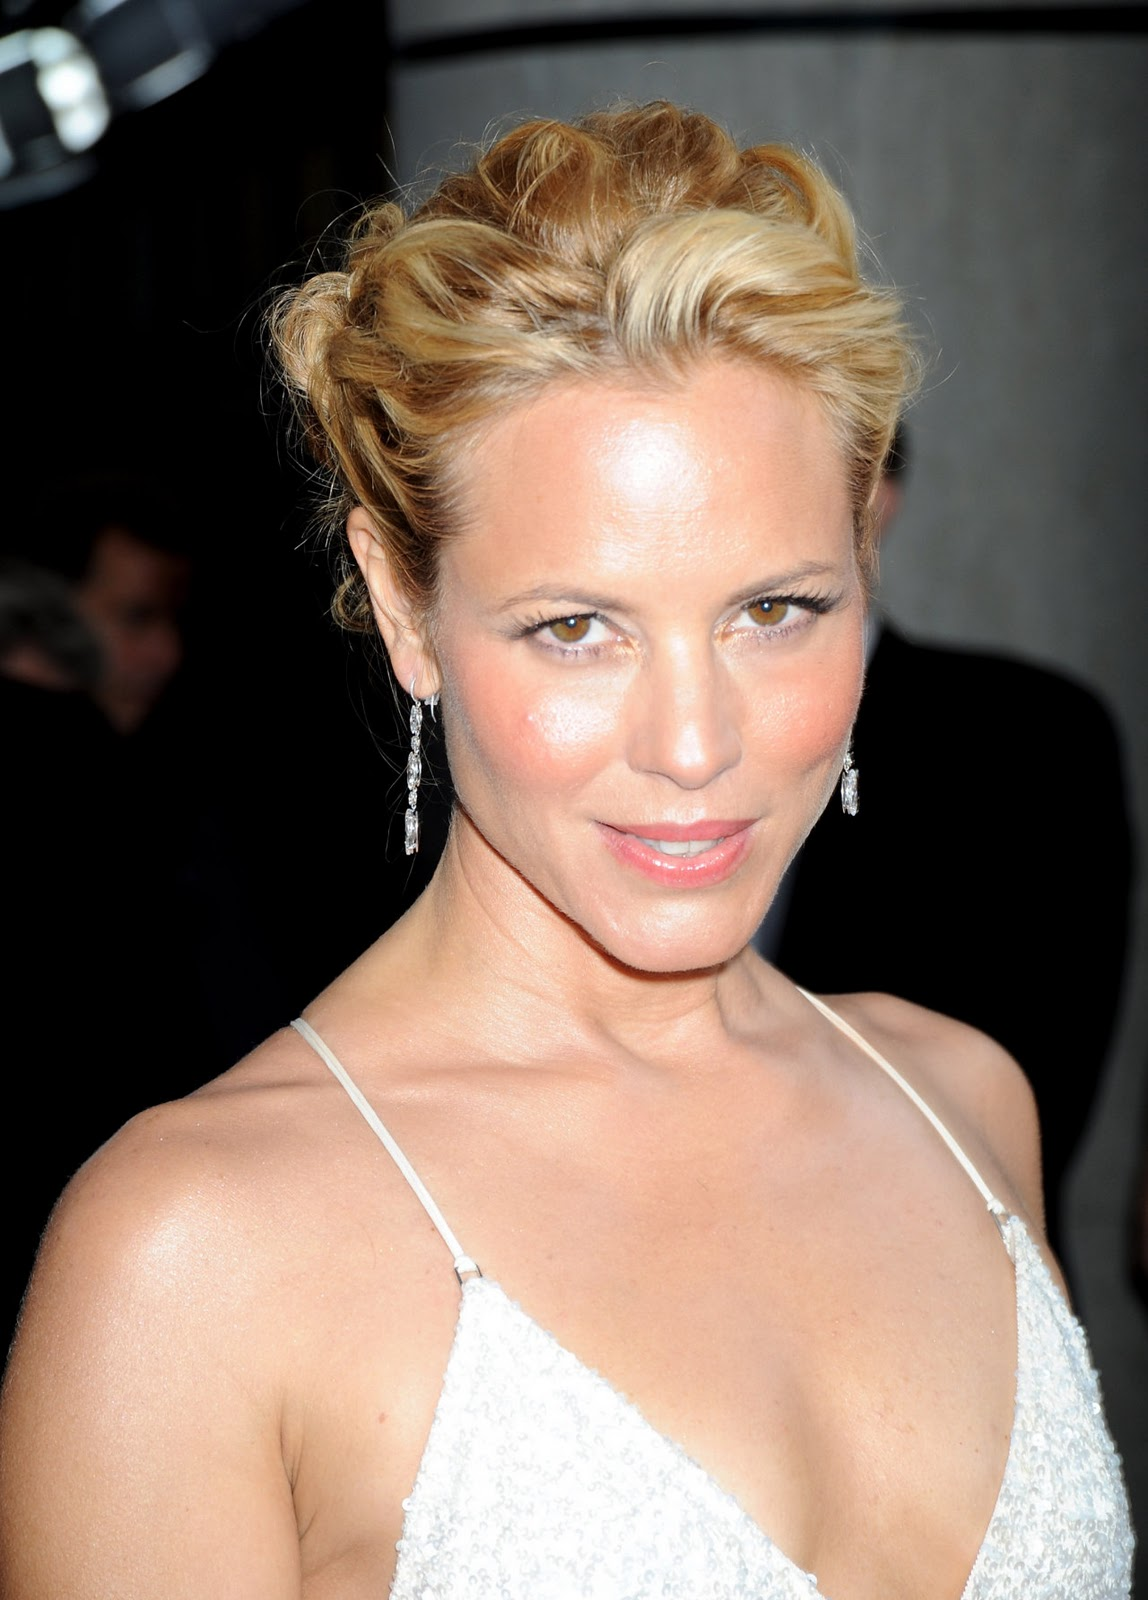 image Maria bello downloading nancy